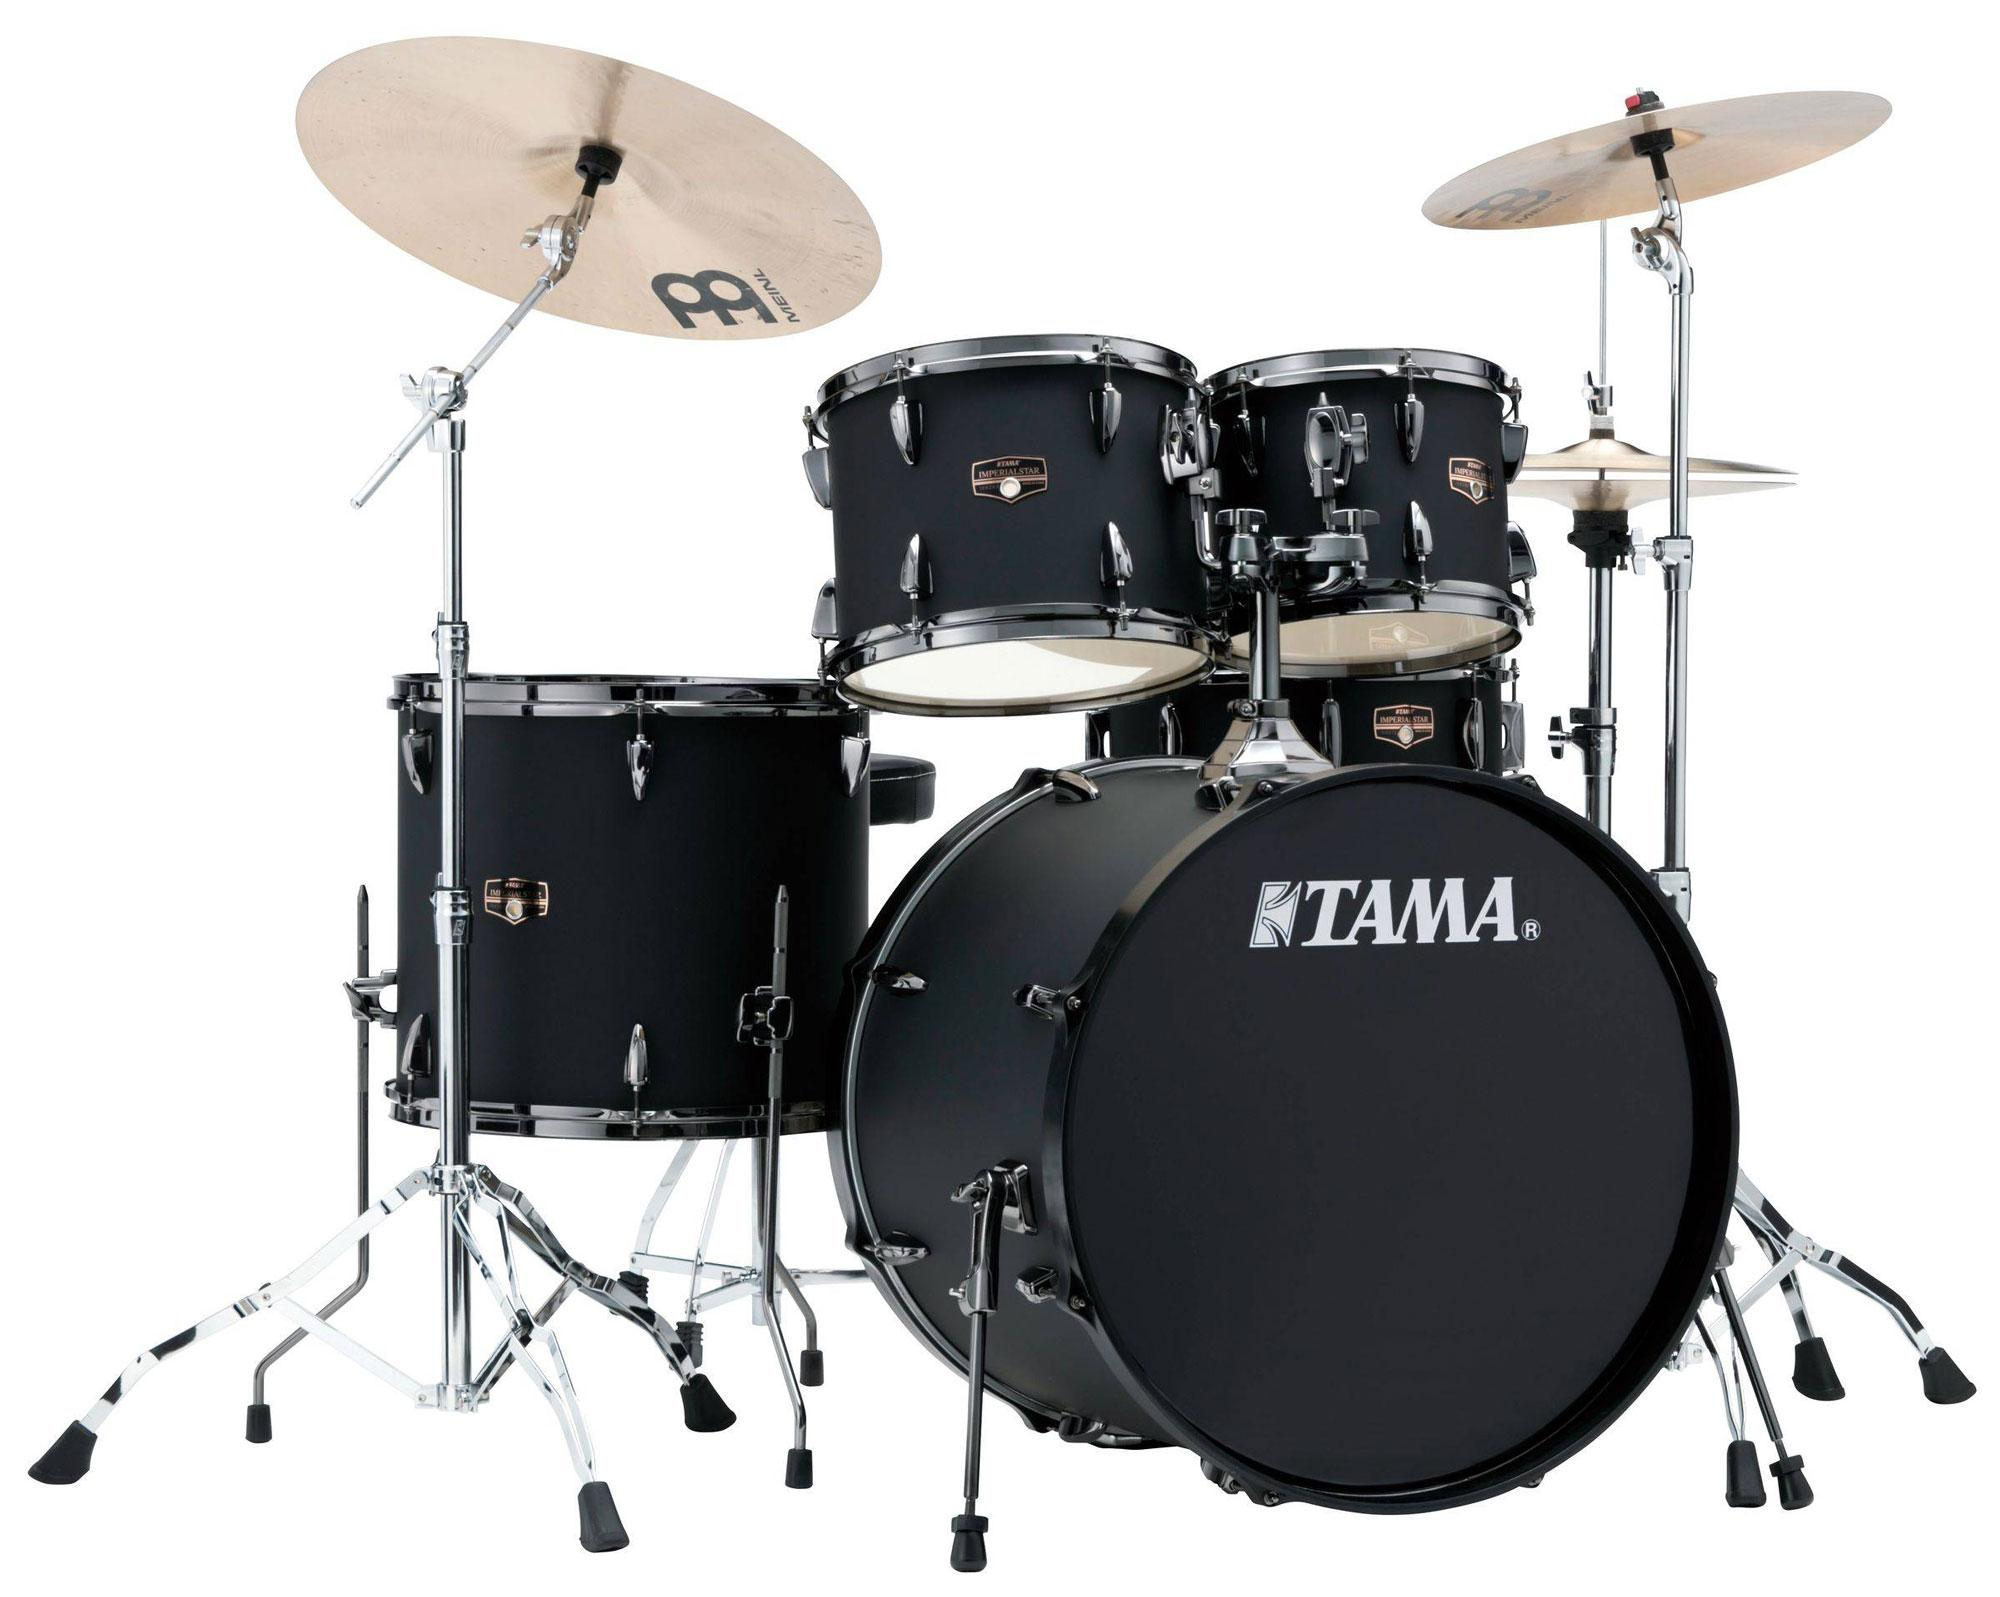 Tama IP52KH6N BBOB Imperialstar Drumkit Blacked Out Black